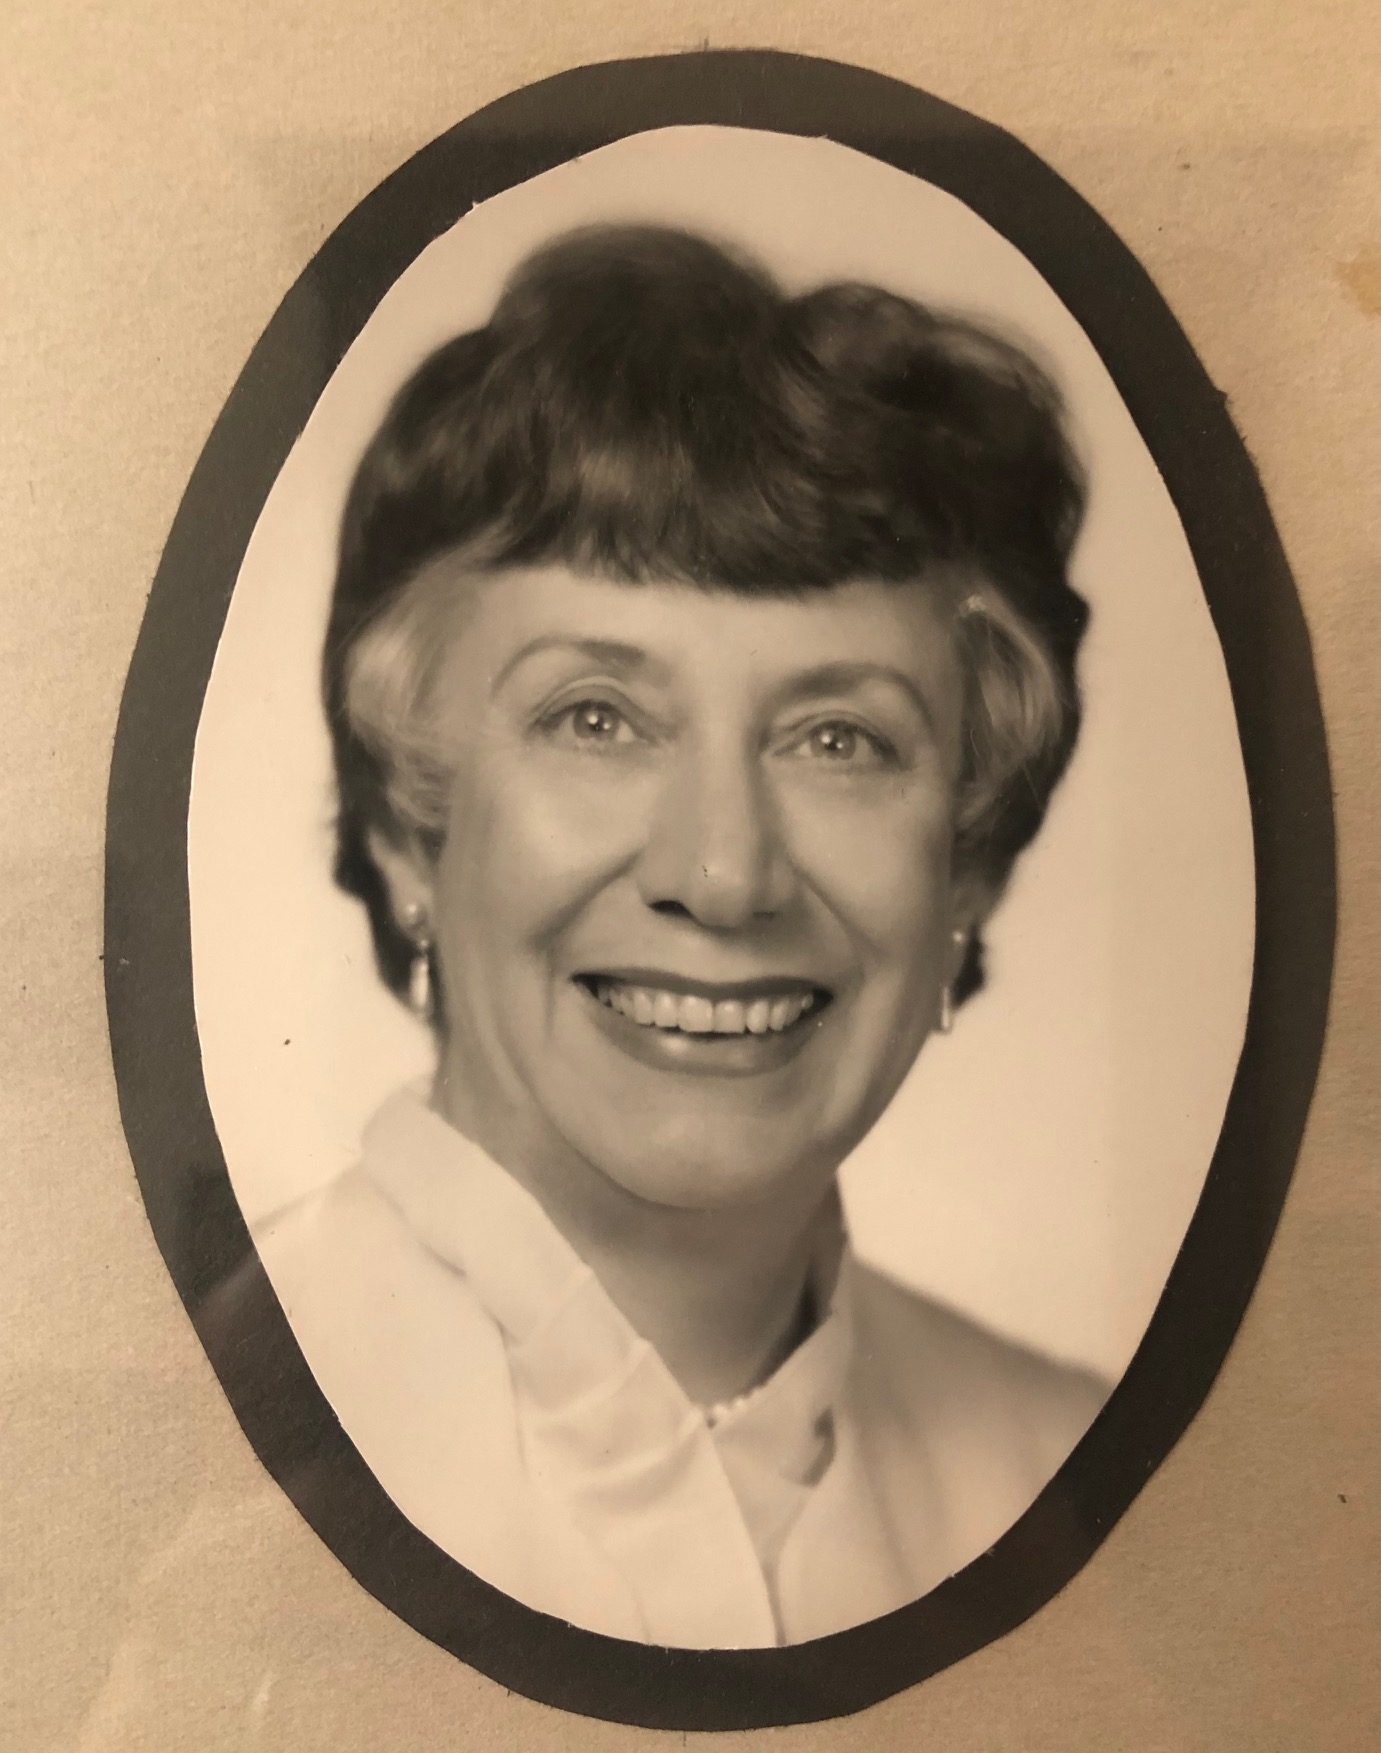 1980 - Gwen Trindl is elected to serve as Winnetka's first female Village President -